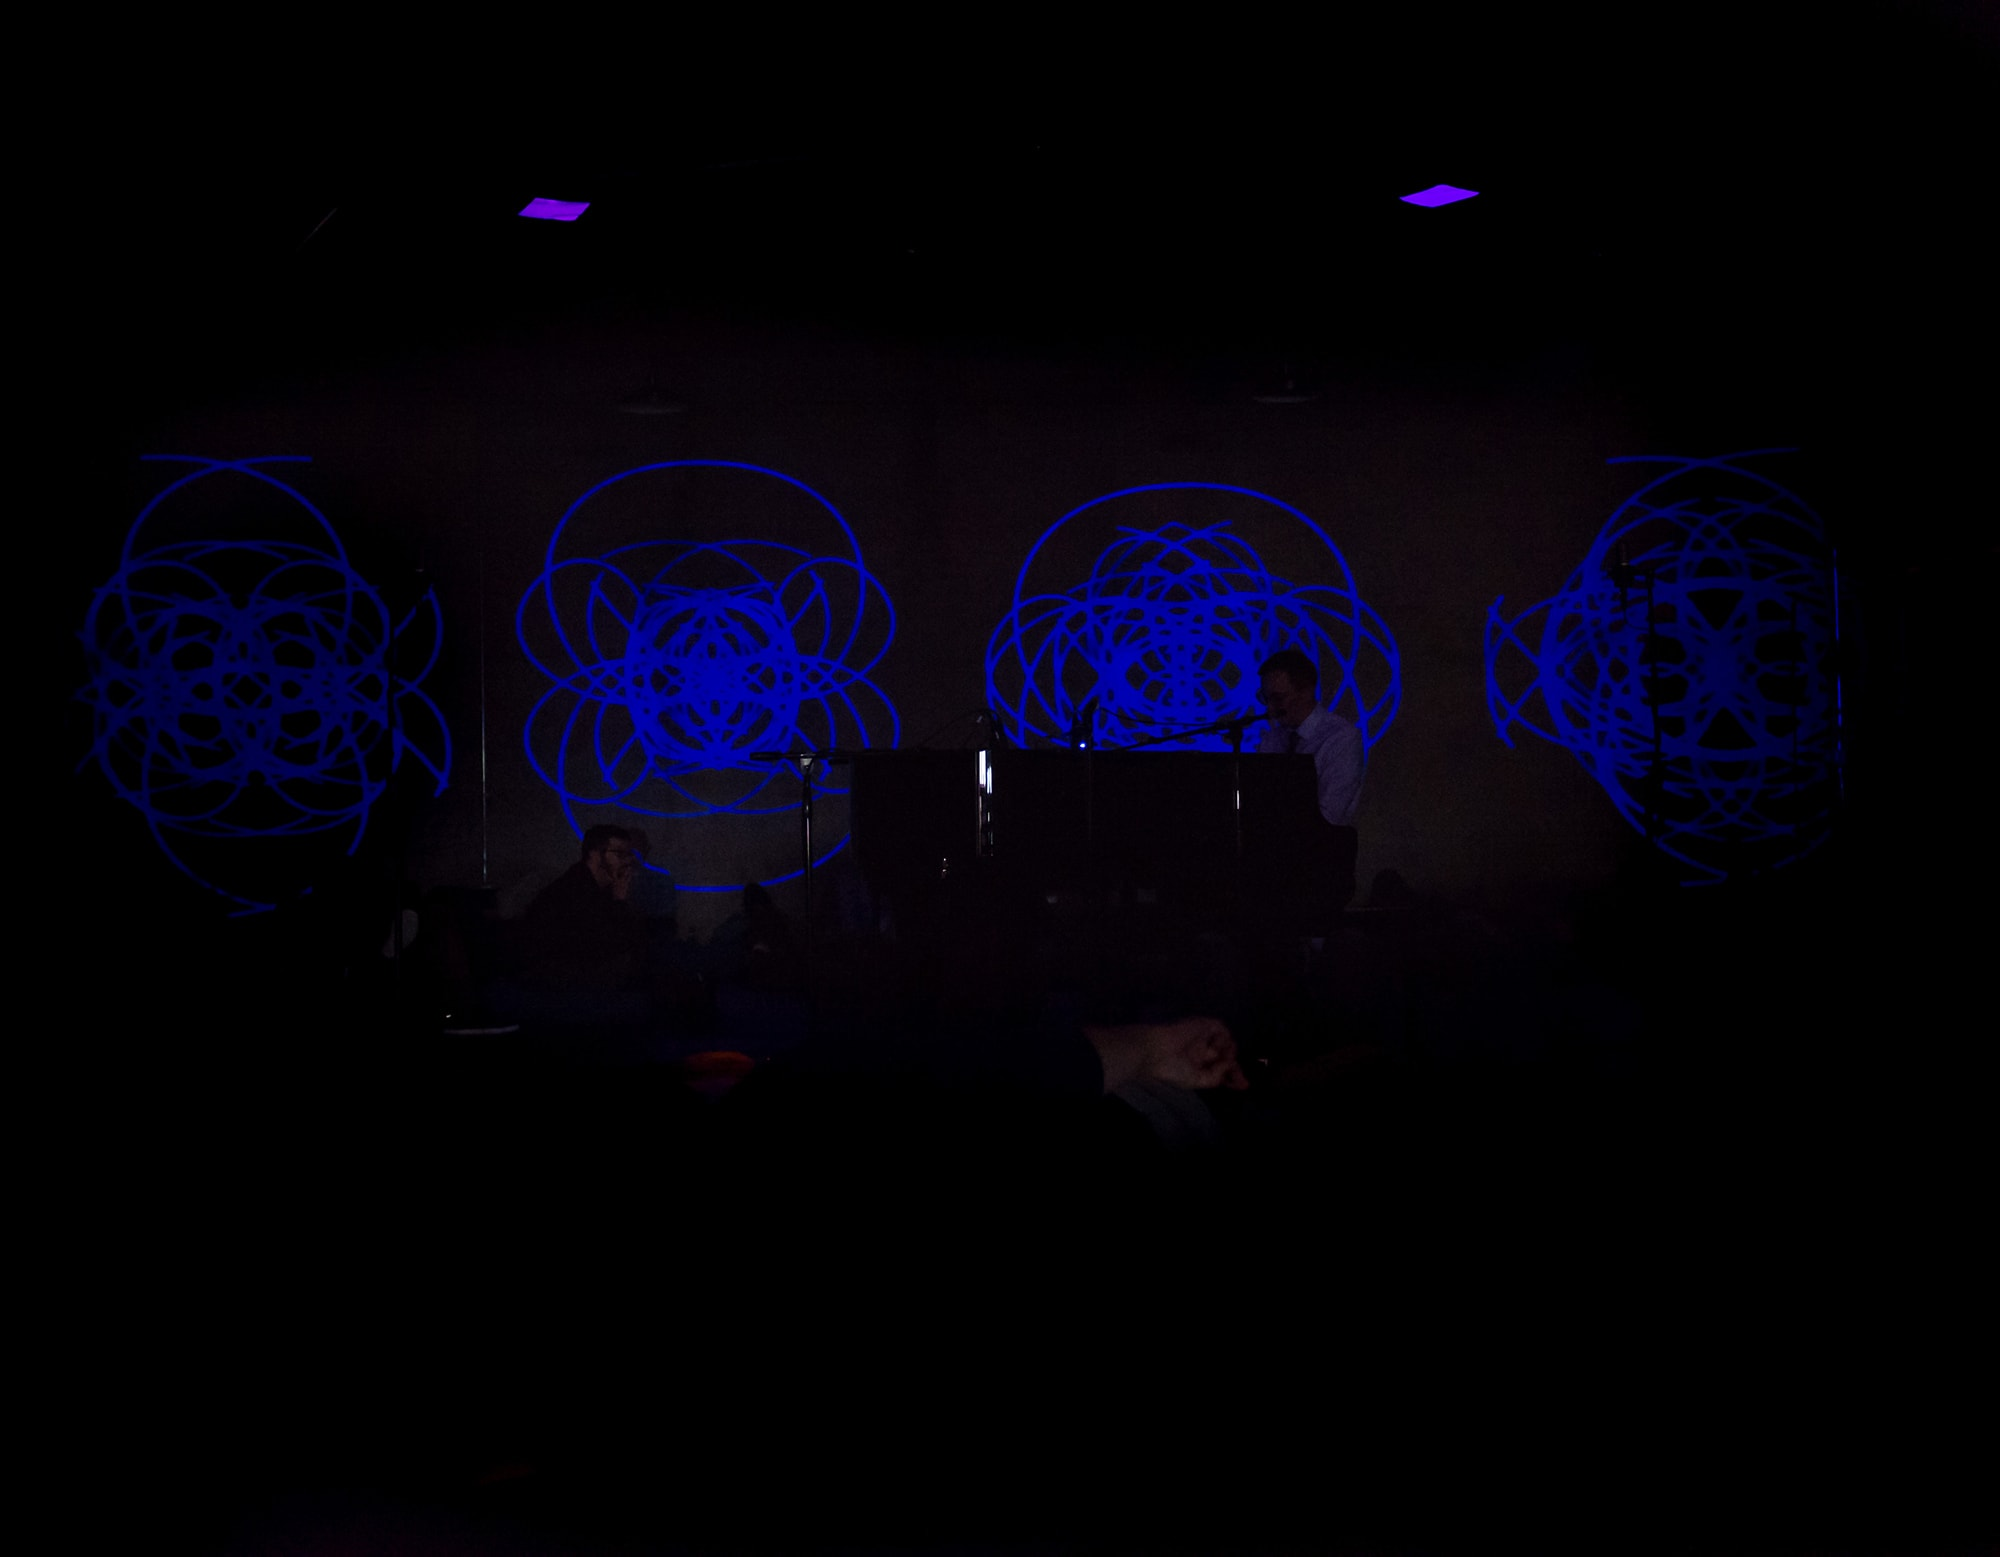 R. Andrew Lee performing Randy Gibson's <em>The Four Pillars Appearing from The Equal D under Resonating Apparitions of The Eternal Process in The Midwinter Starfield</em> in a setting of <em>Quadrilateral Starfield Symmetry Tx4 Base 7:144</em> at the Nief Norf Summer Festival, 2017